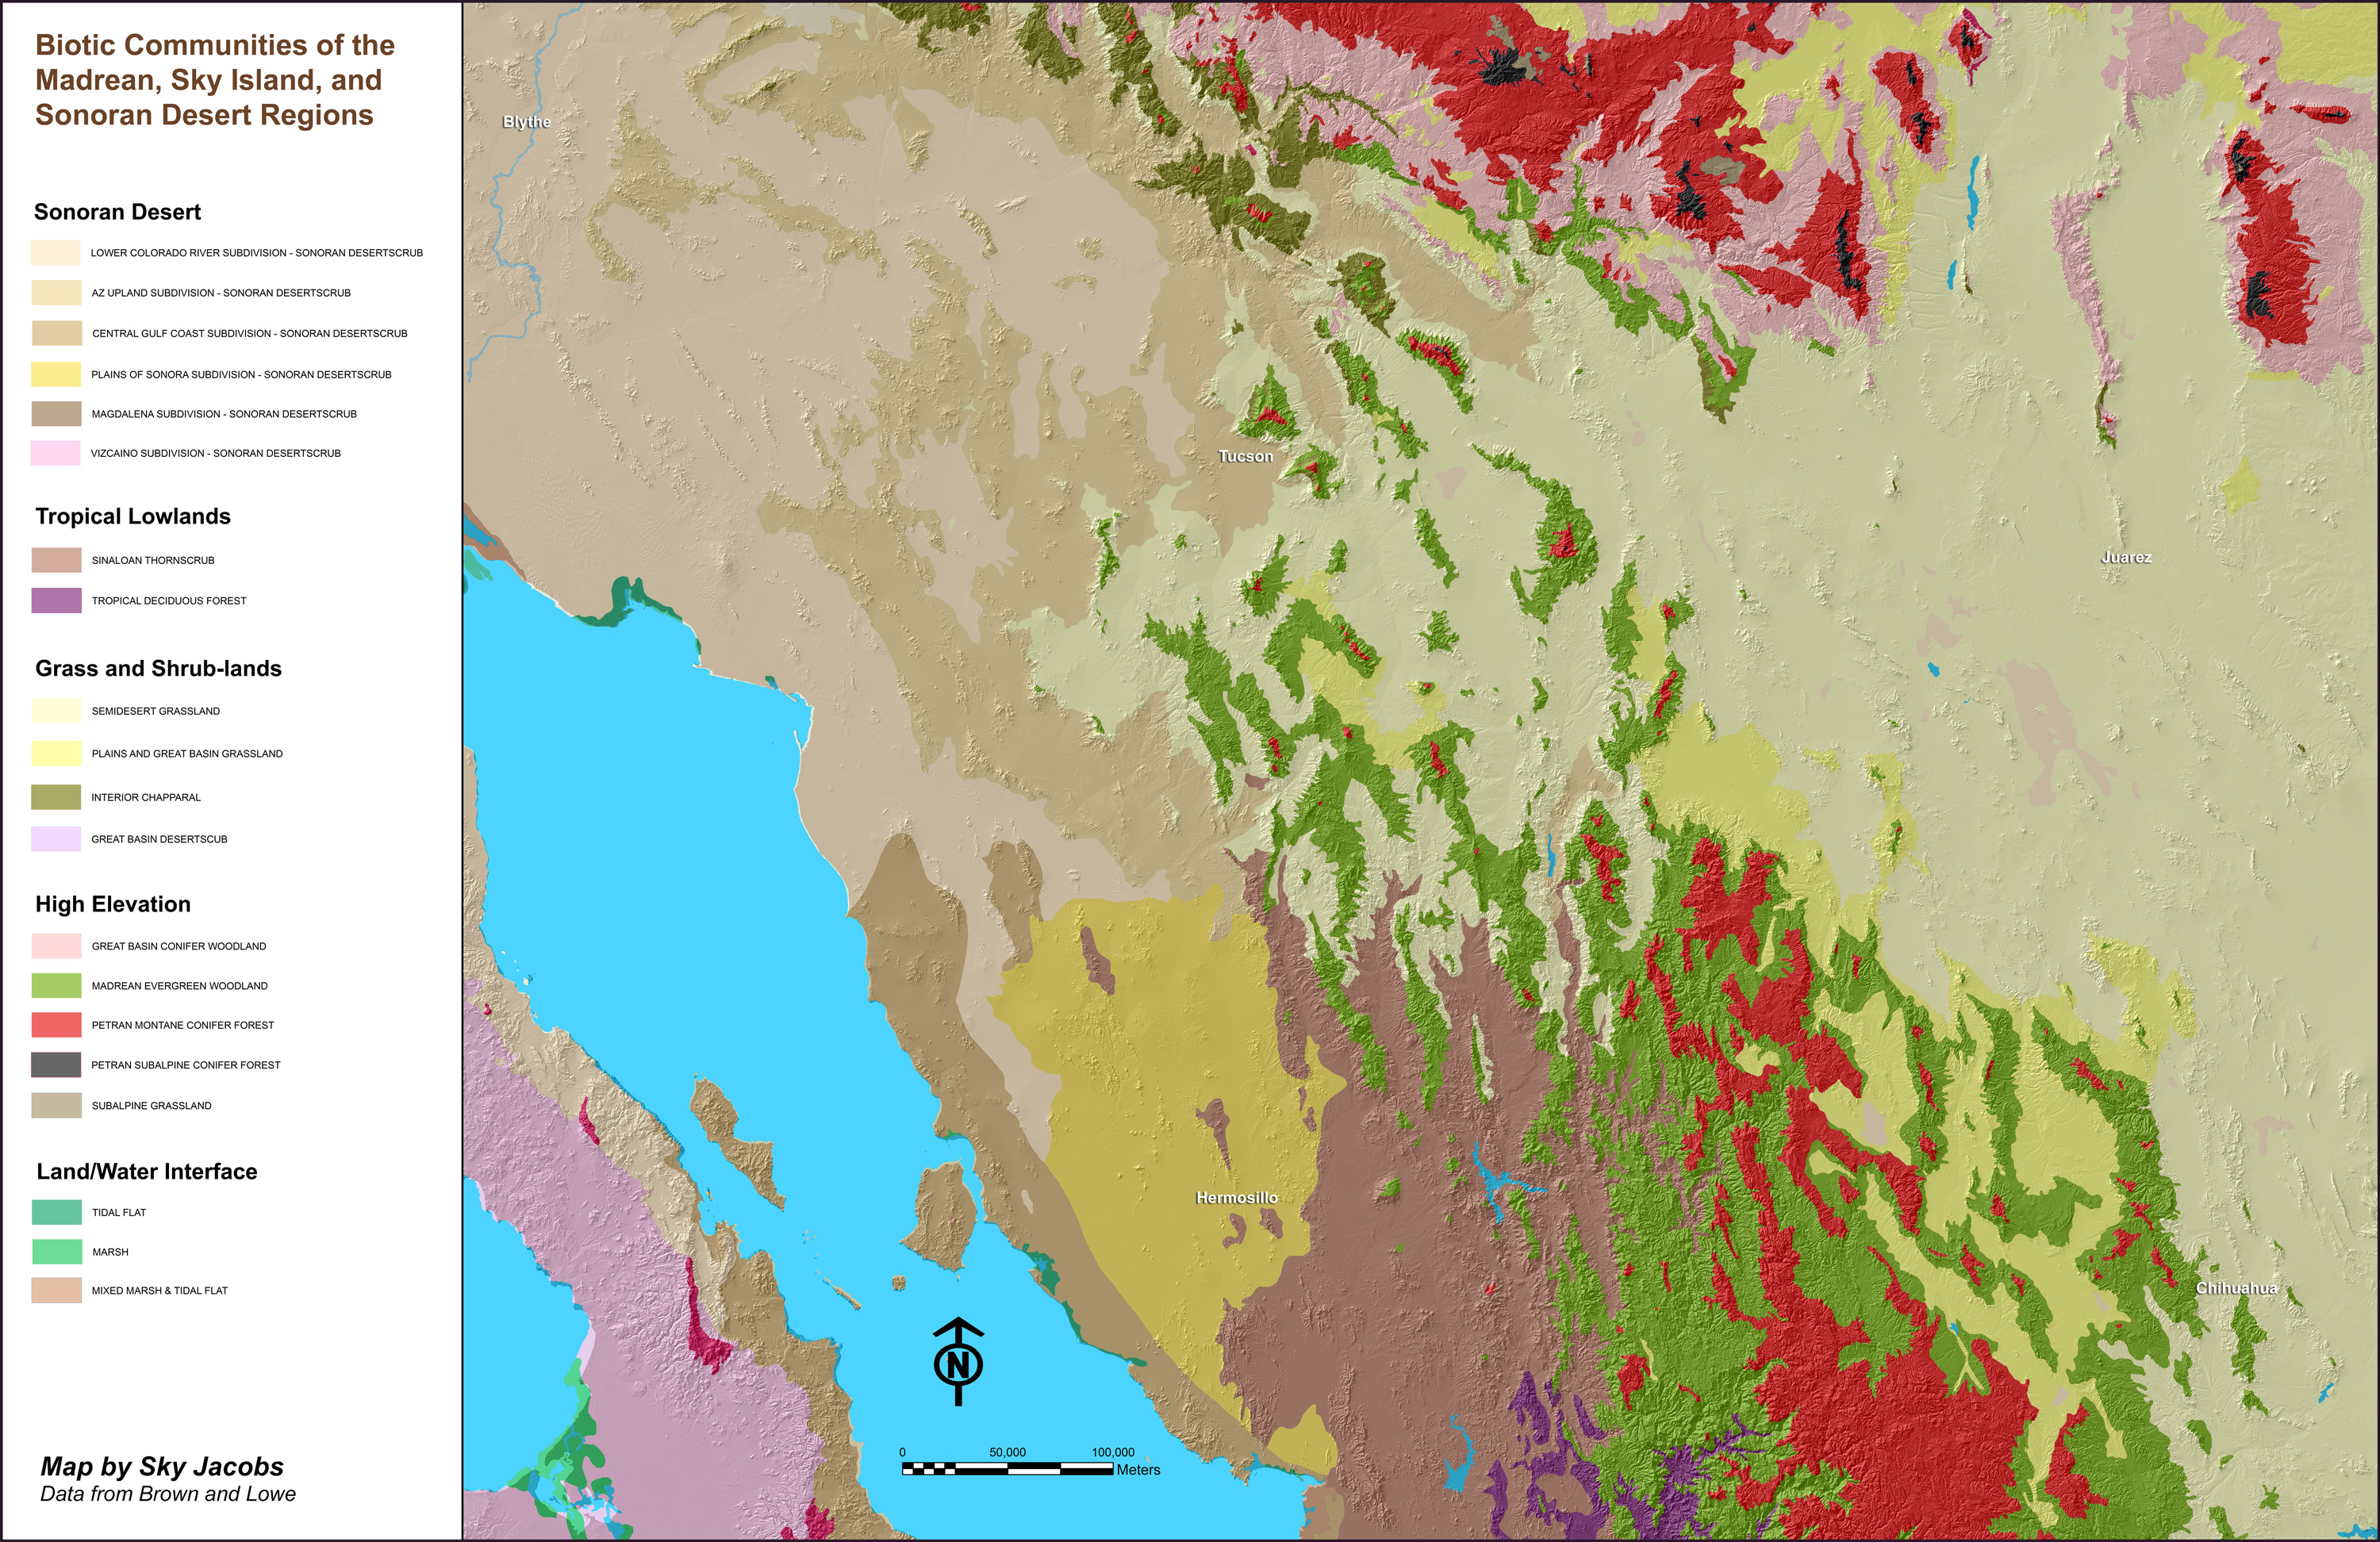 Southwest America Map.Vegetation Communities Of Southwestern North America Wild Sonora